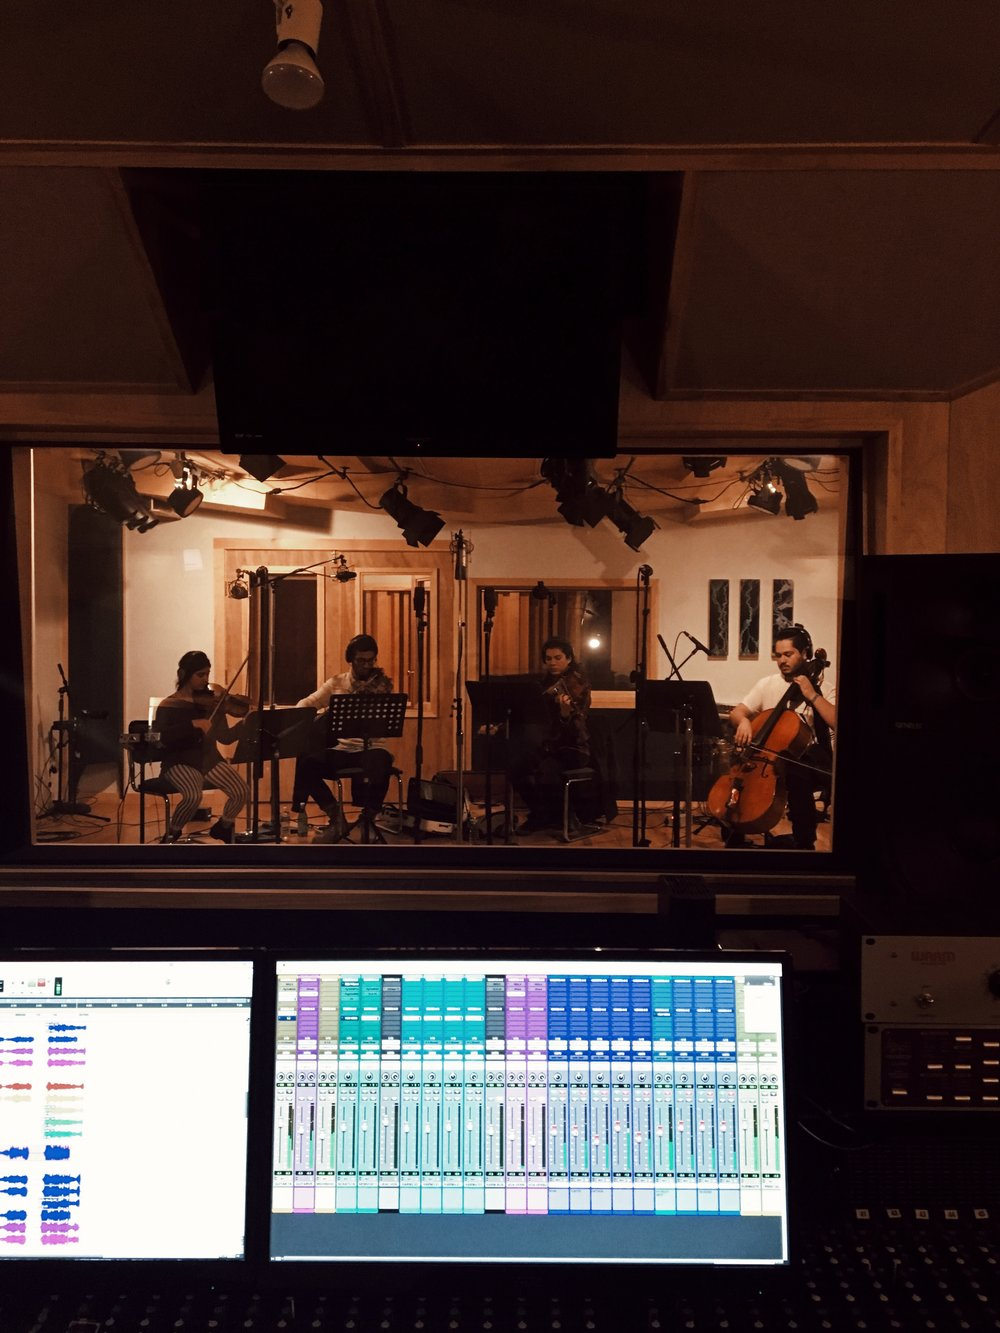 I still can't put into words the feeling of hearing these strings give my simple little arrangement so much emotion and depth. (There were definitely tears.)